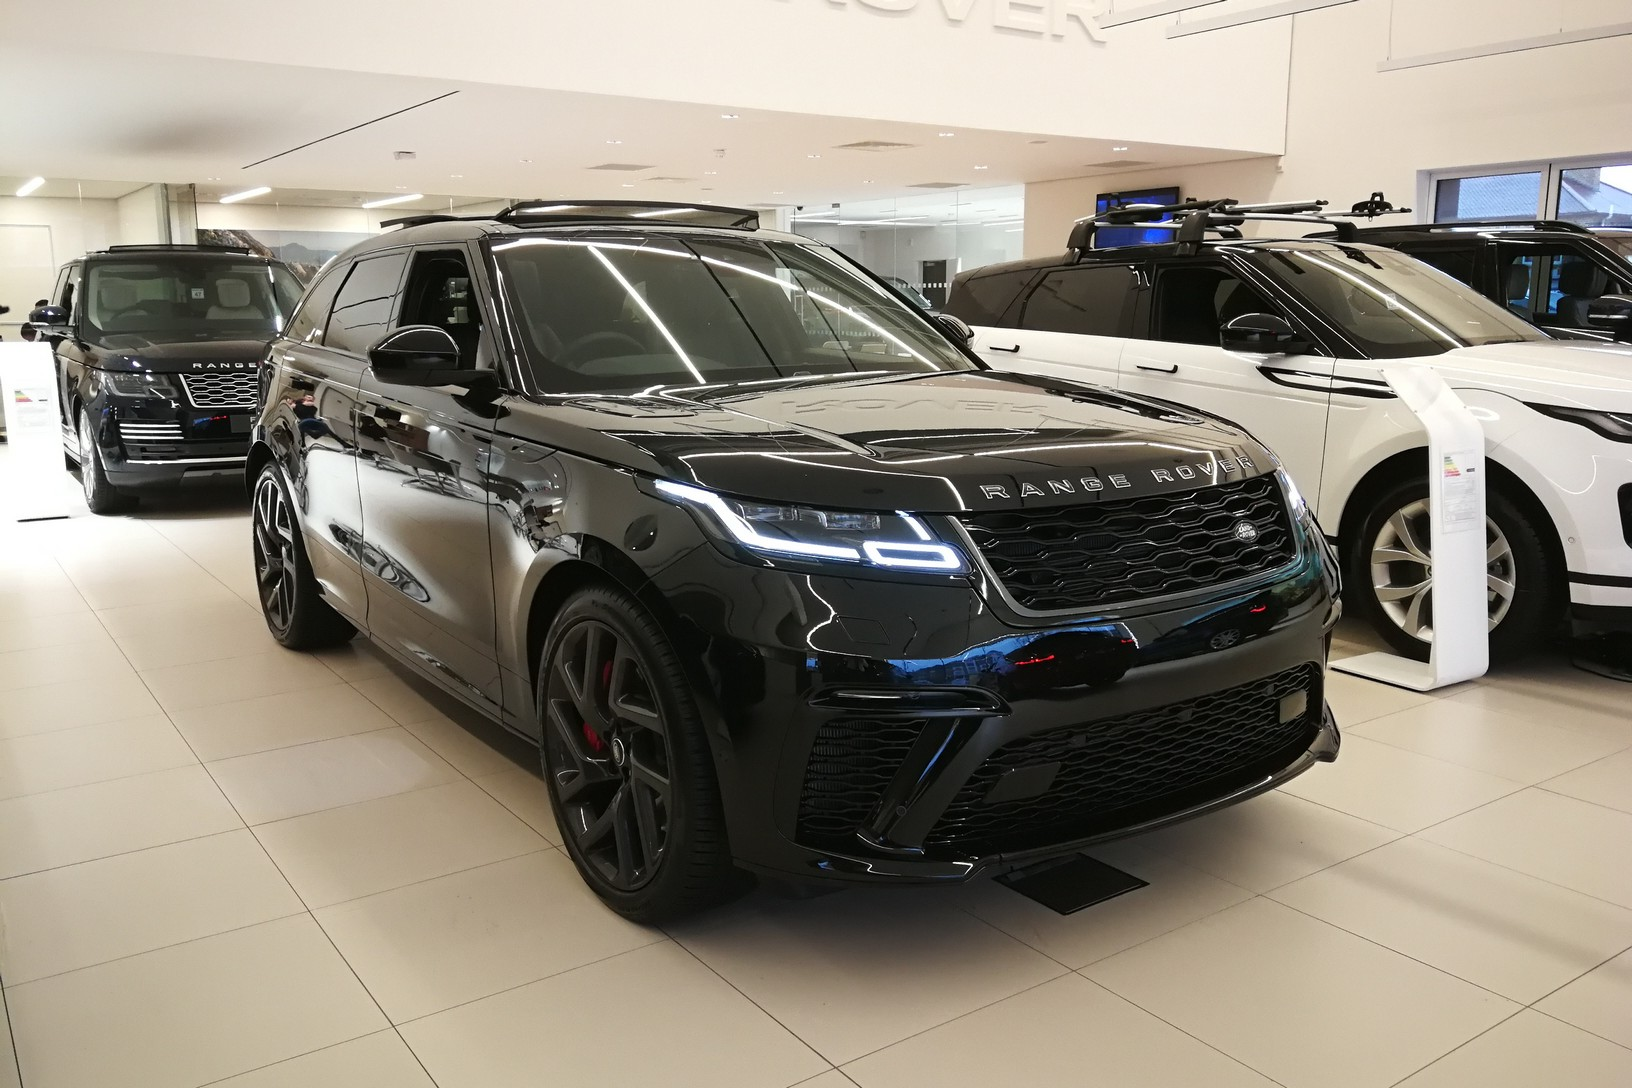 Land Rover Range Rover Velar 5.0 P550 SVAutobiography Dynamic Edition Automatic 5 door 4x4 (19MY)